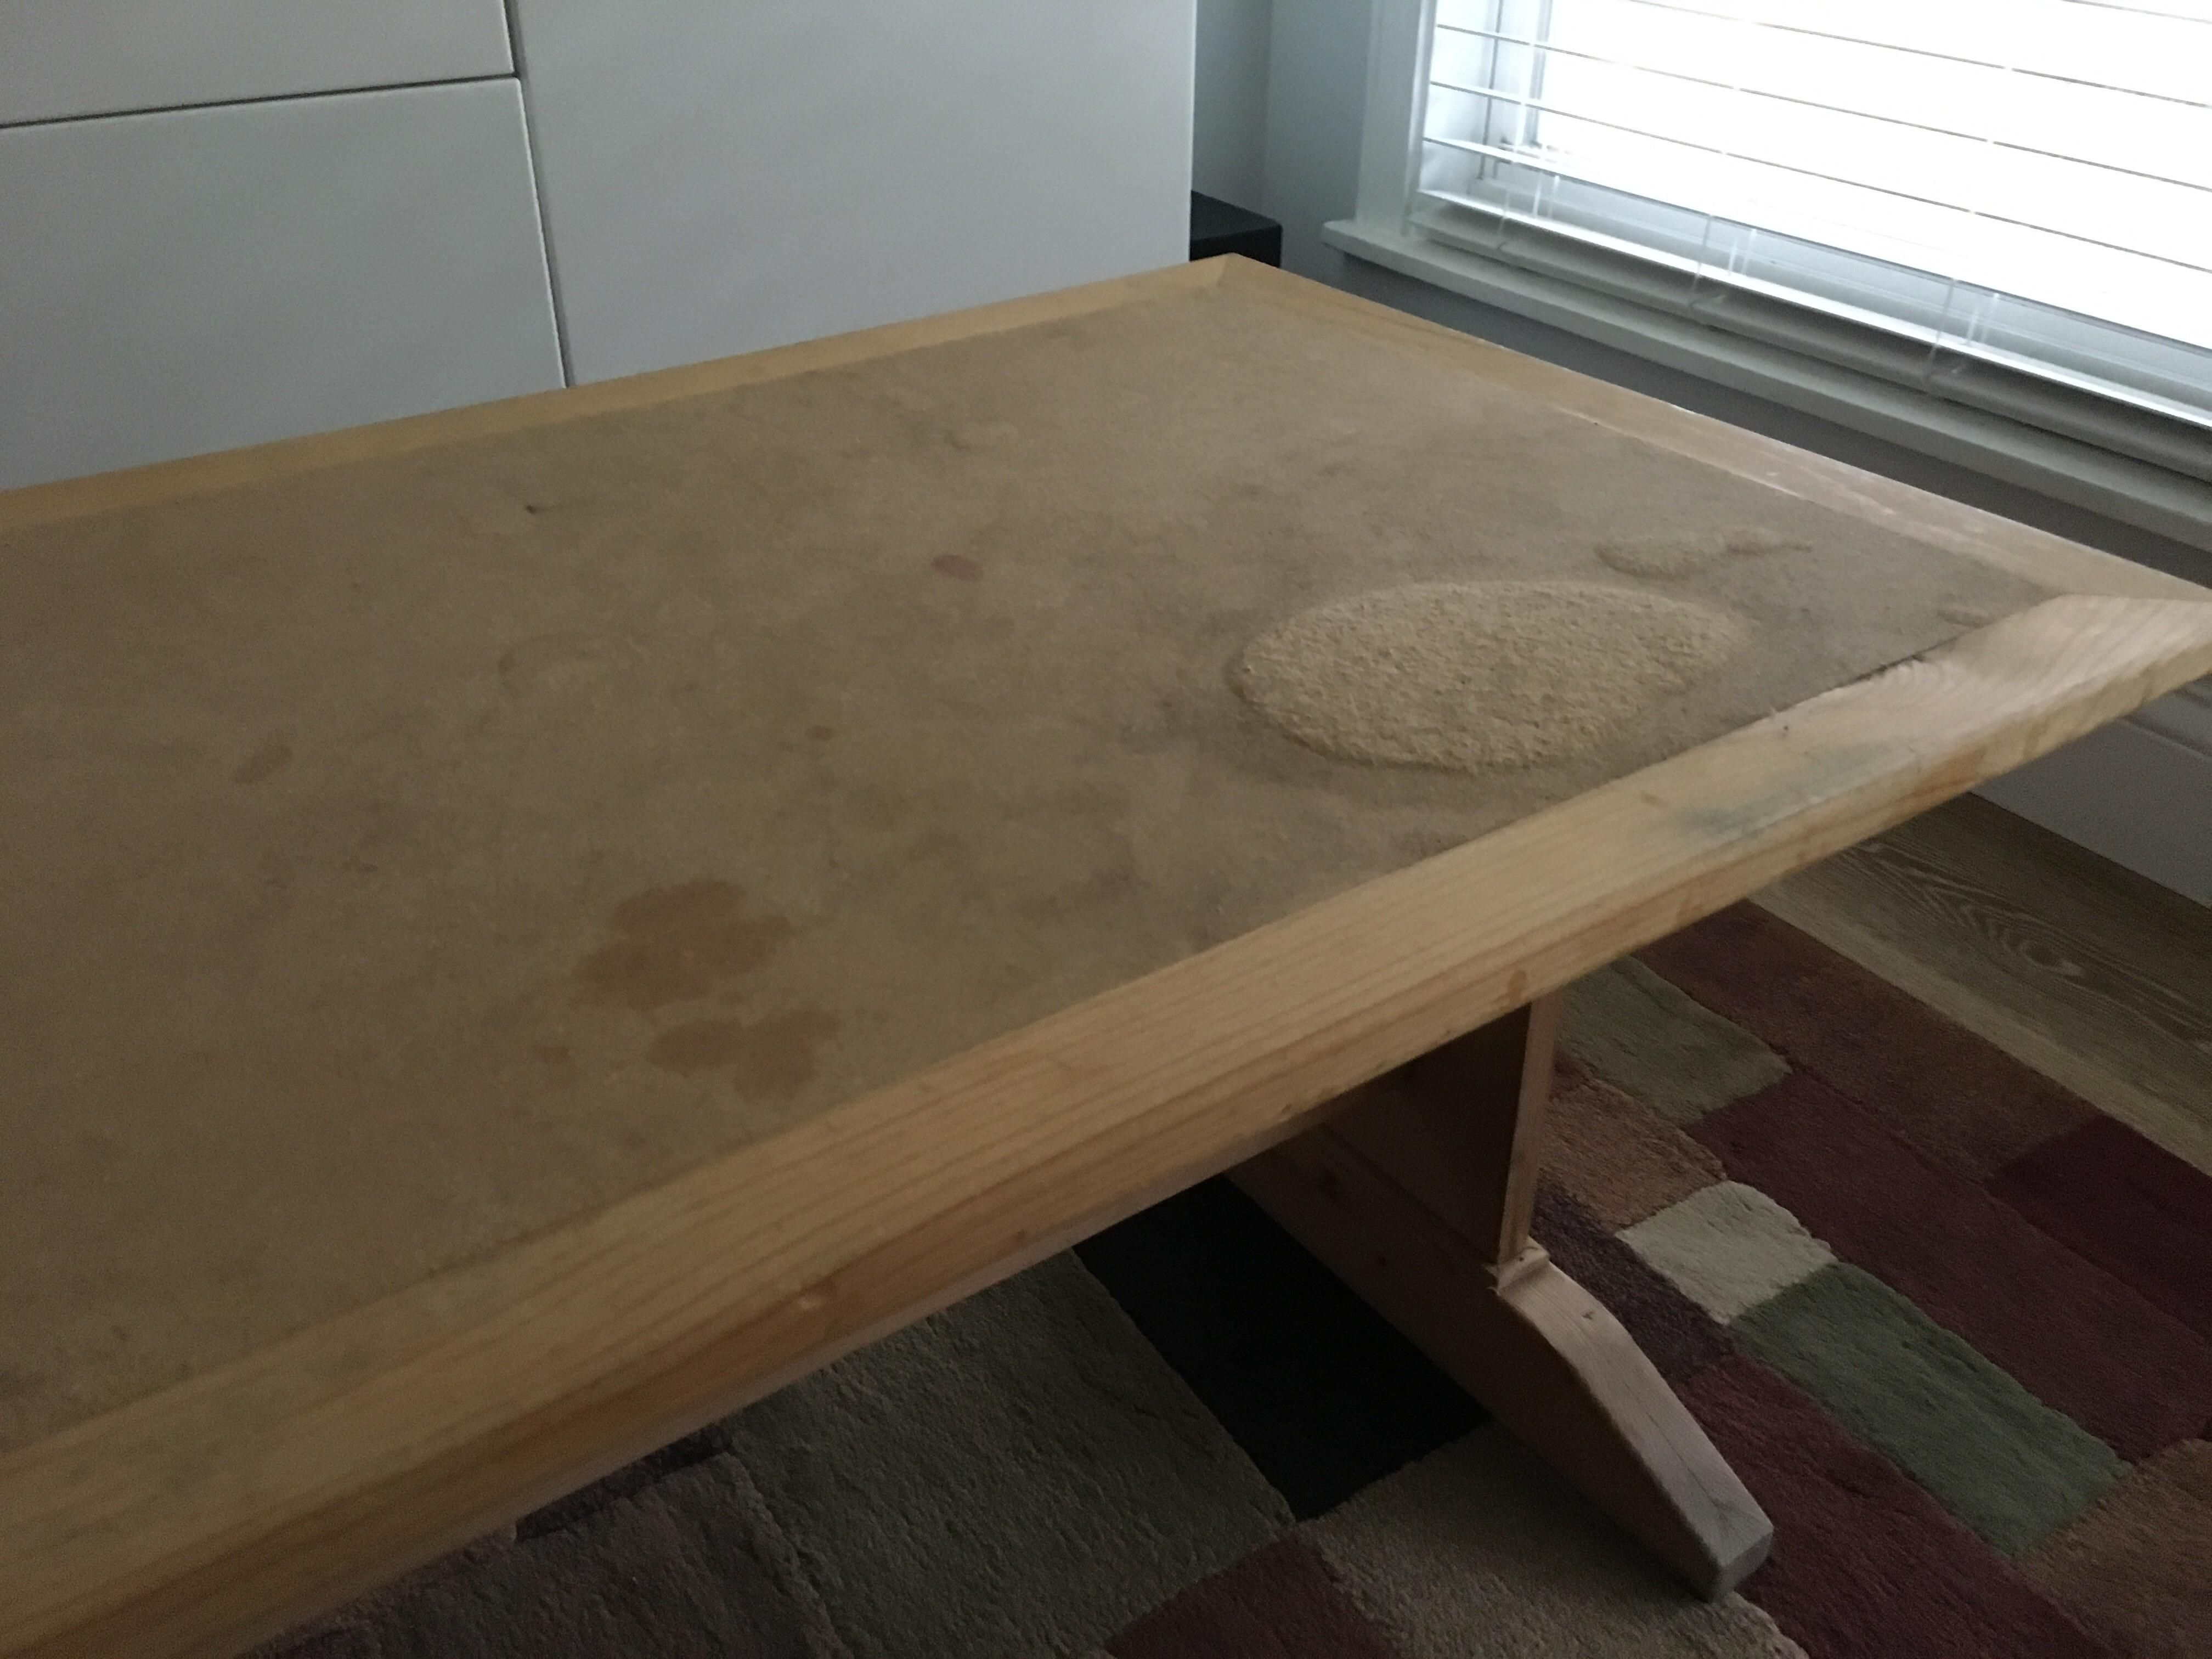 Can This Be Repaired Childrens Table With Water Damaged Mdf Top Https Ift Tt 2dp7iqw Wood Repair Mdf Furniture Water Damage